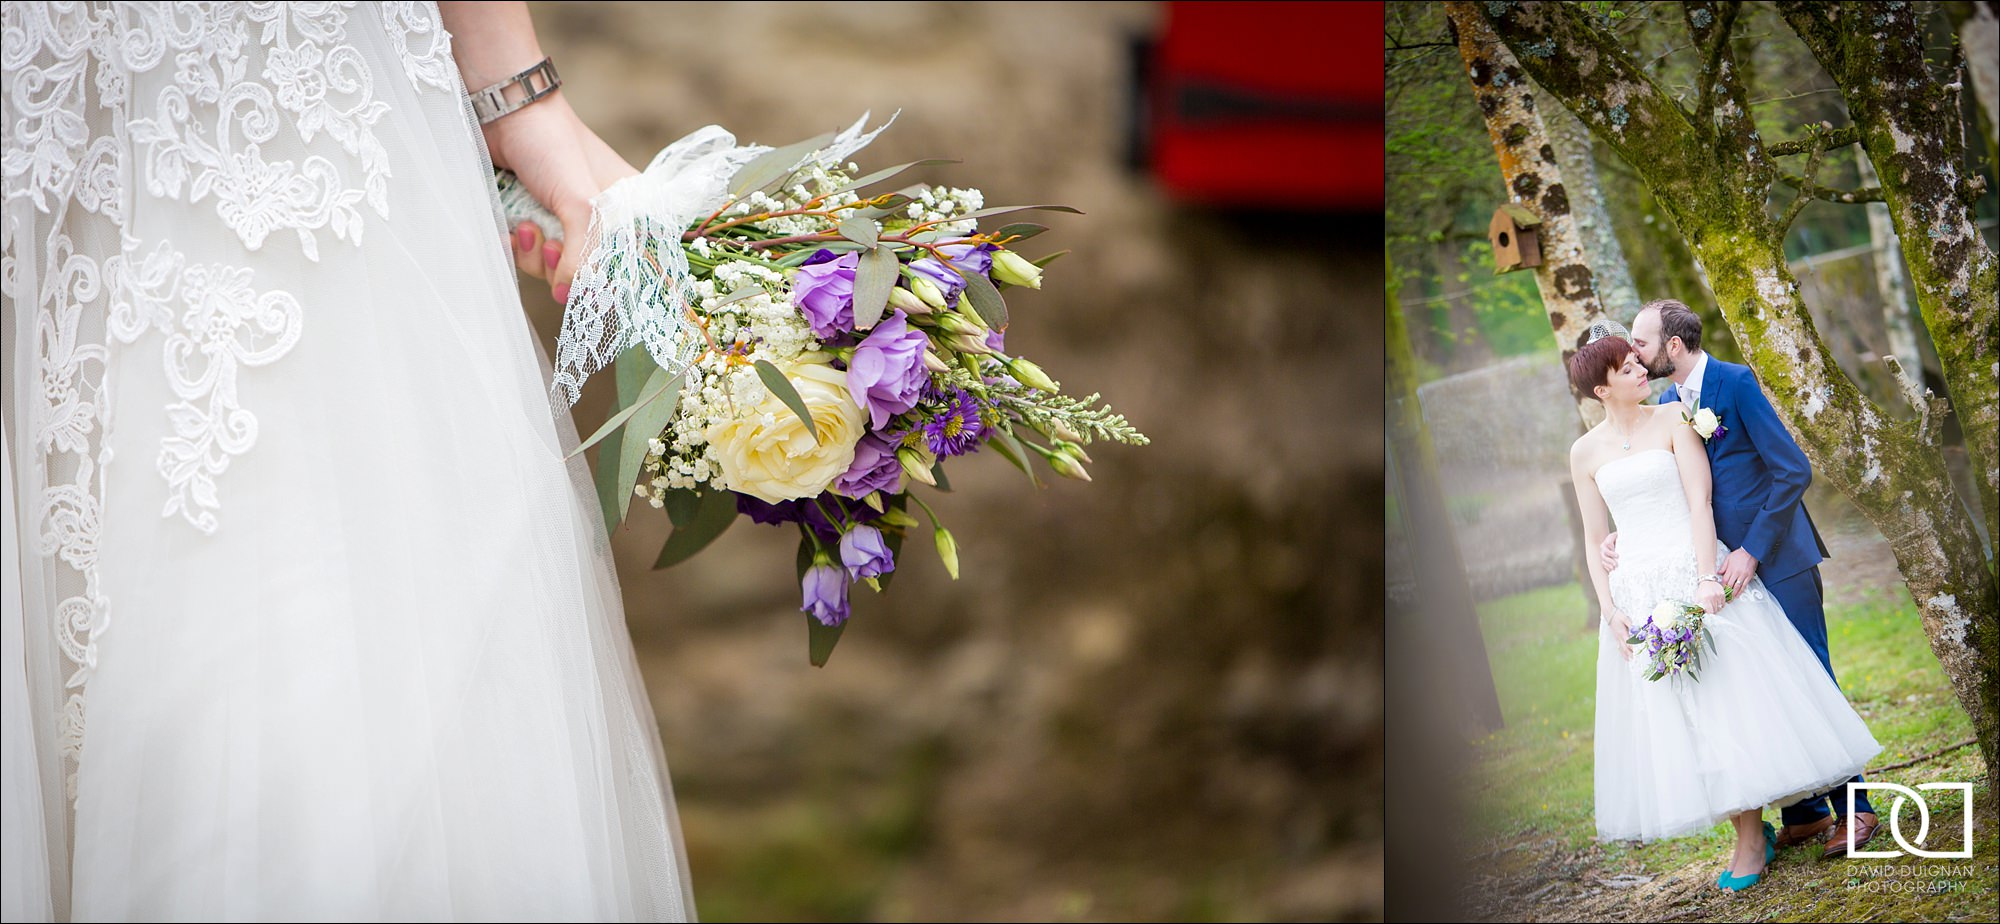 dublin wedding photographer david duignan photography horetown house wedding wexford Ireland 0020